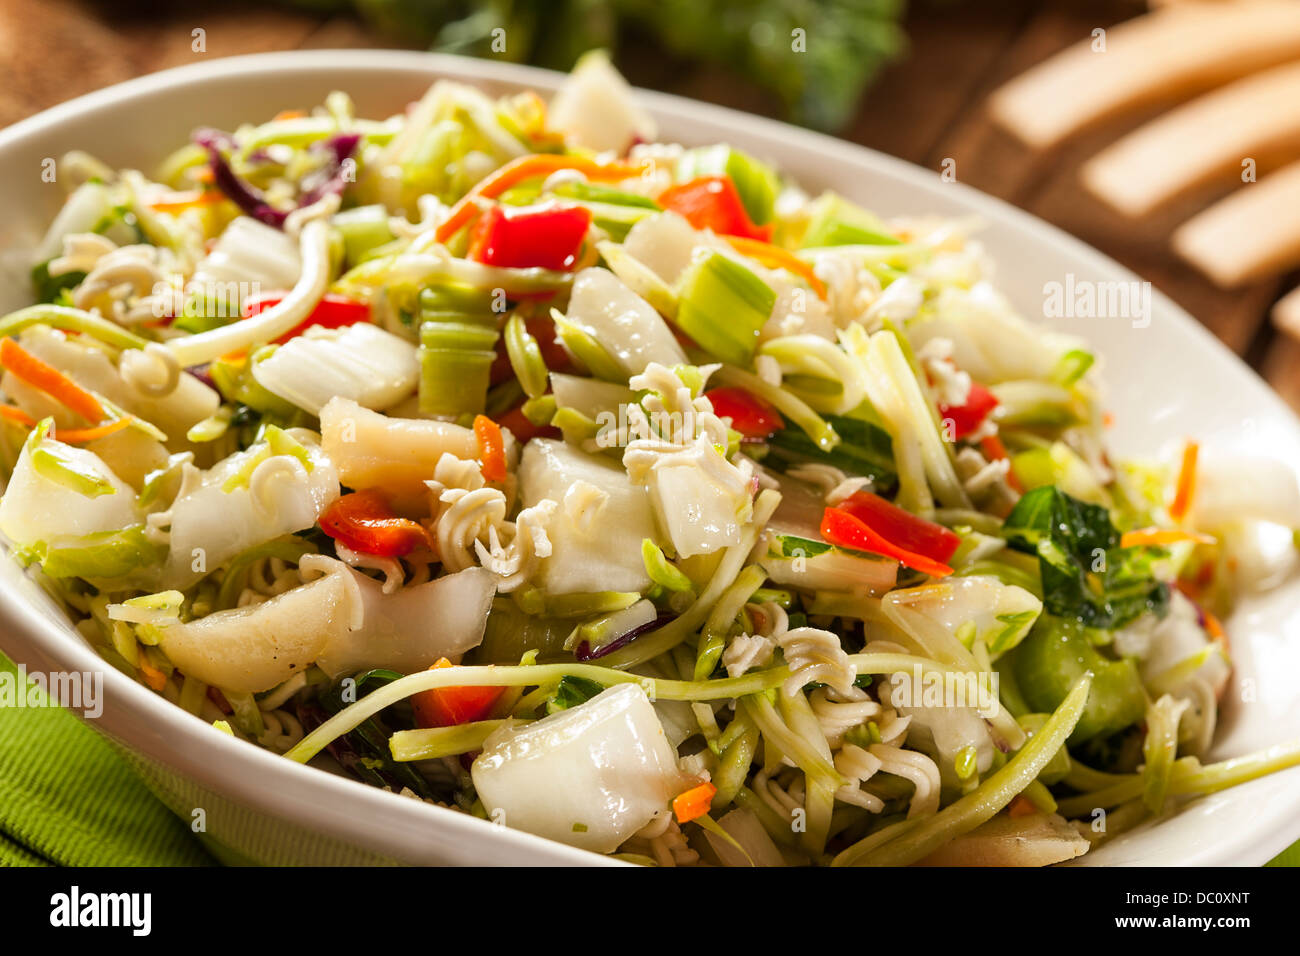 Asian Bok Choy and Ramen Salad in a Bowl - Stock Image